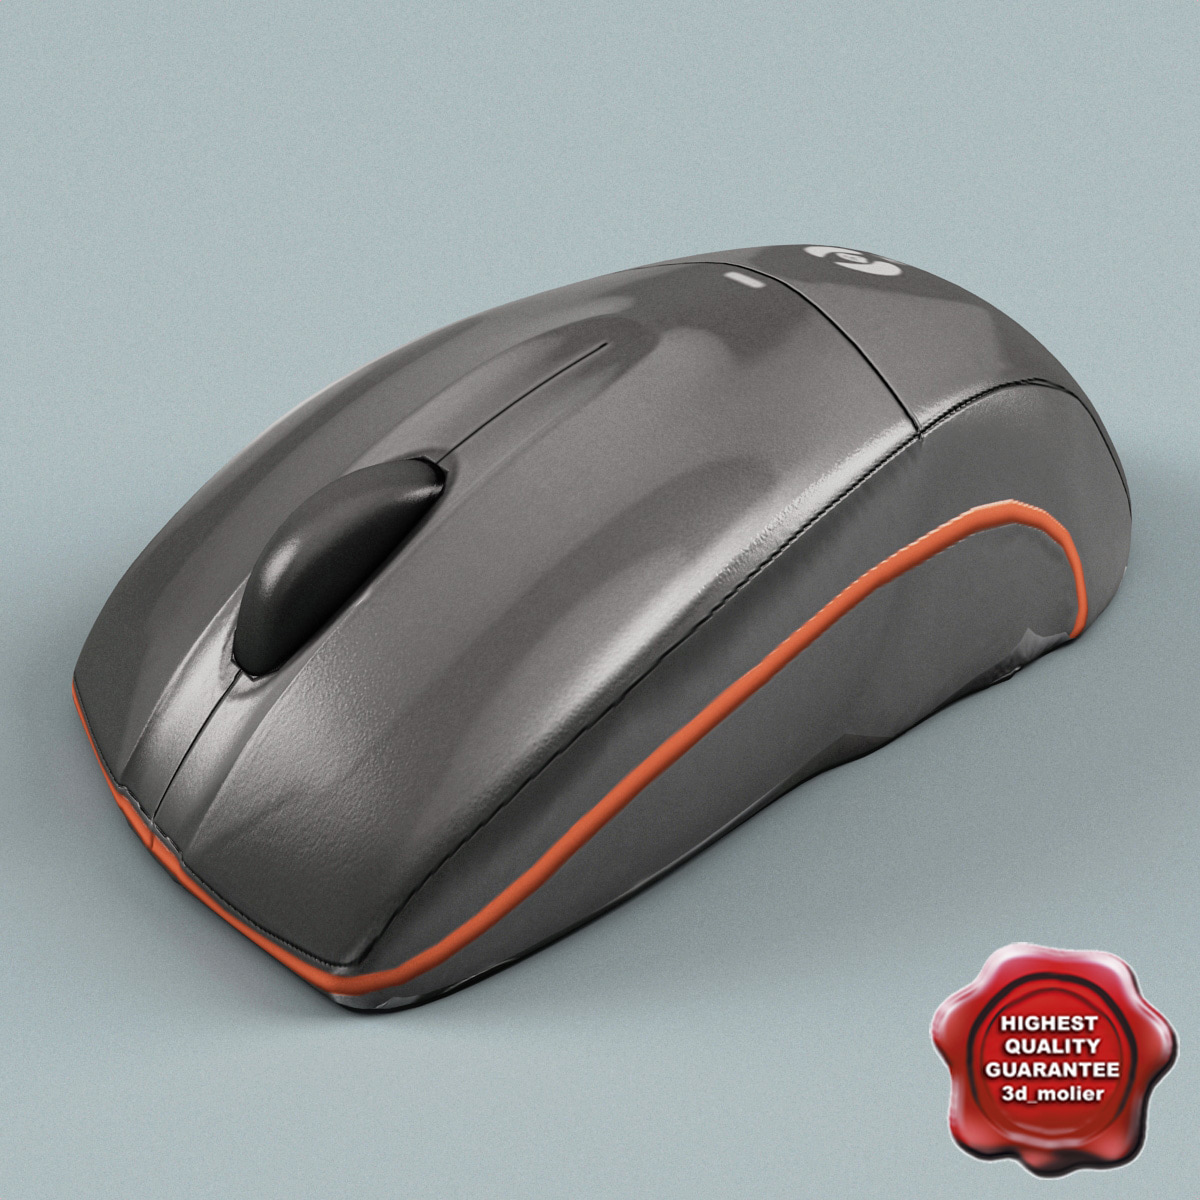 Computer_Mouse_Low_Poly_00.jpg